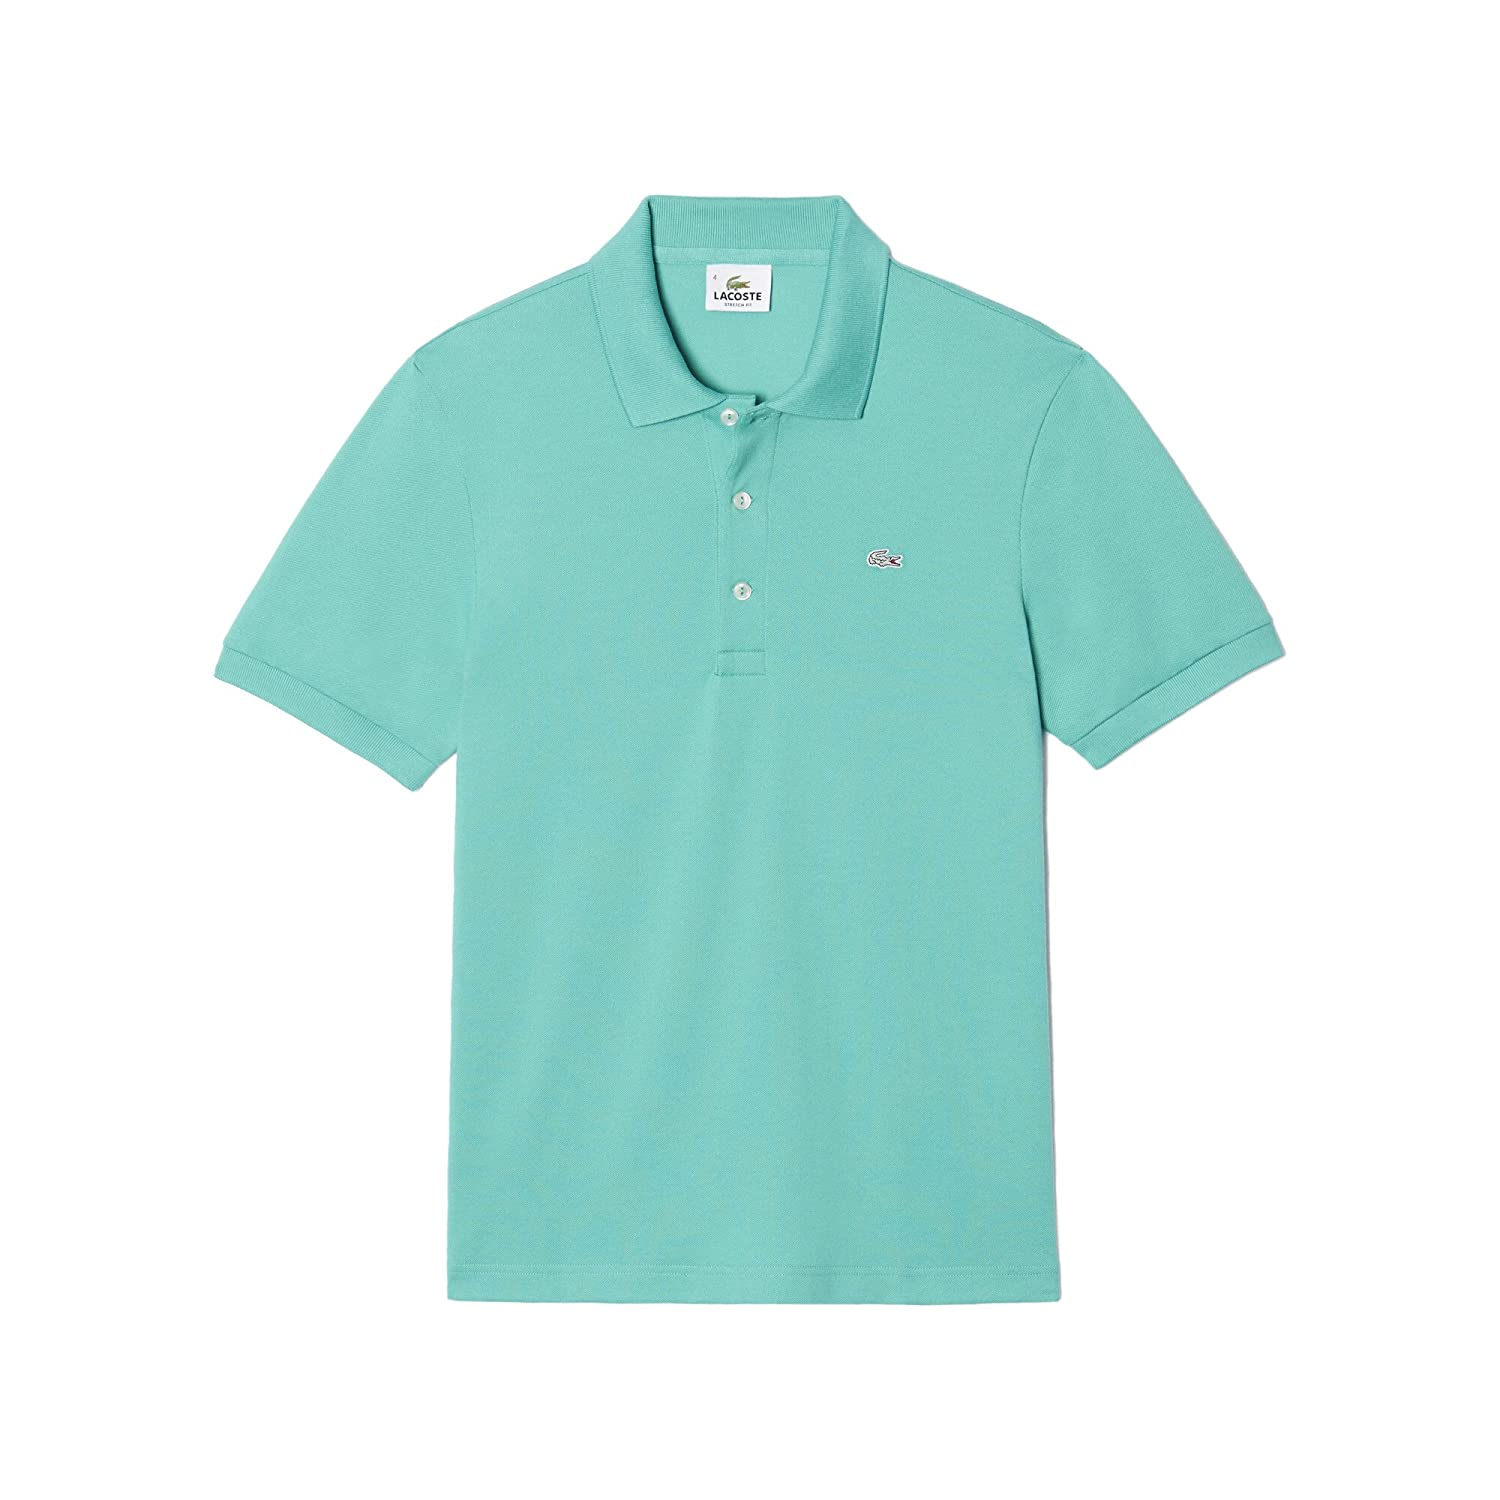 Lacoste Homme Polo Col Small Mao Turquoise Y7vgbf6y